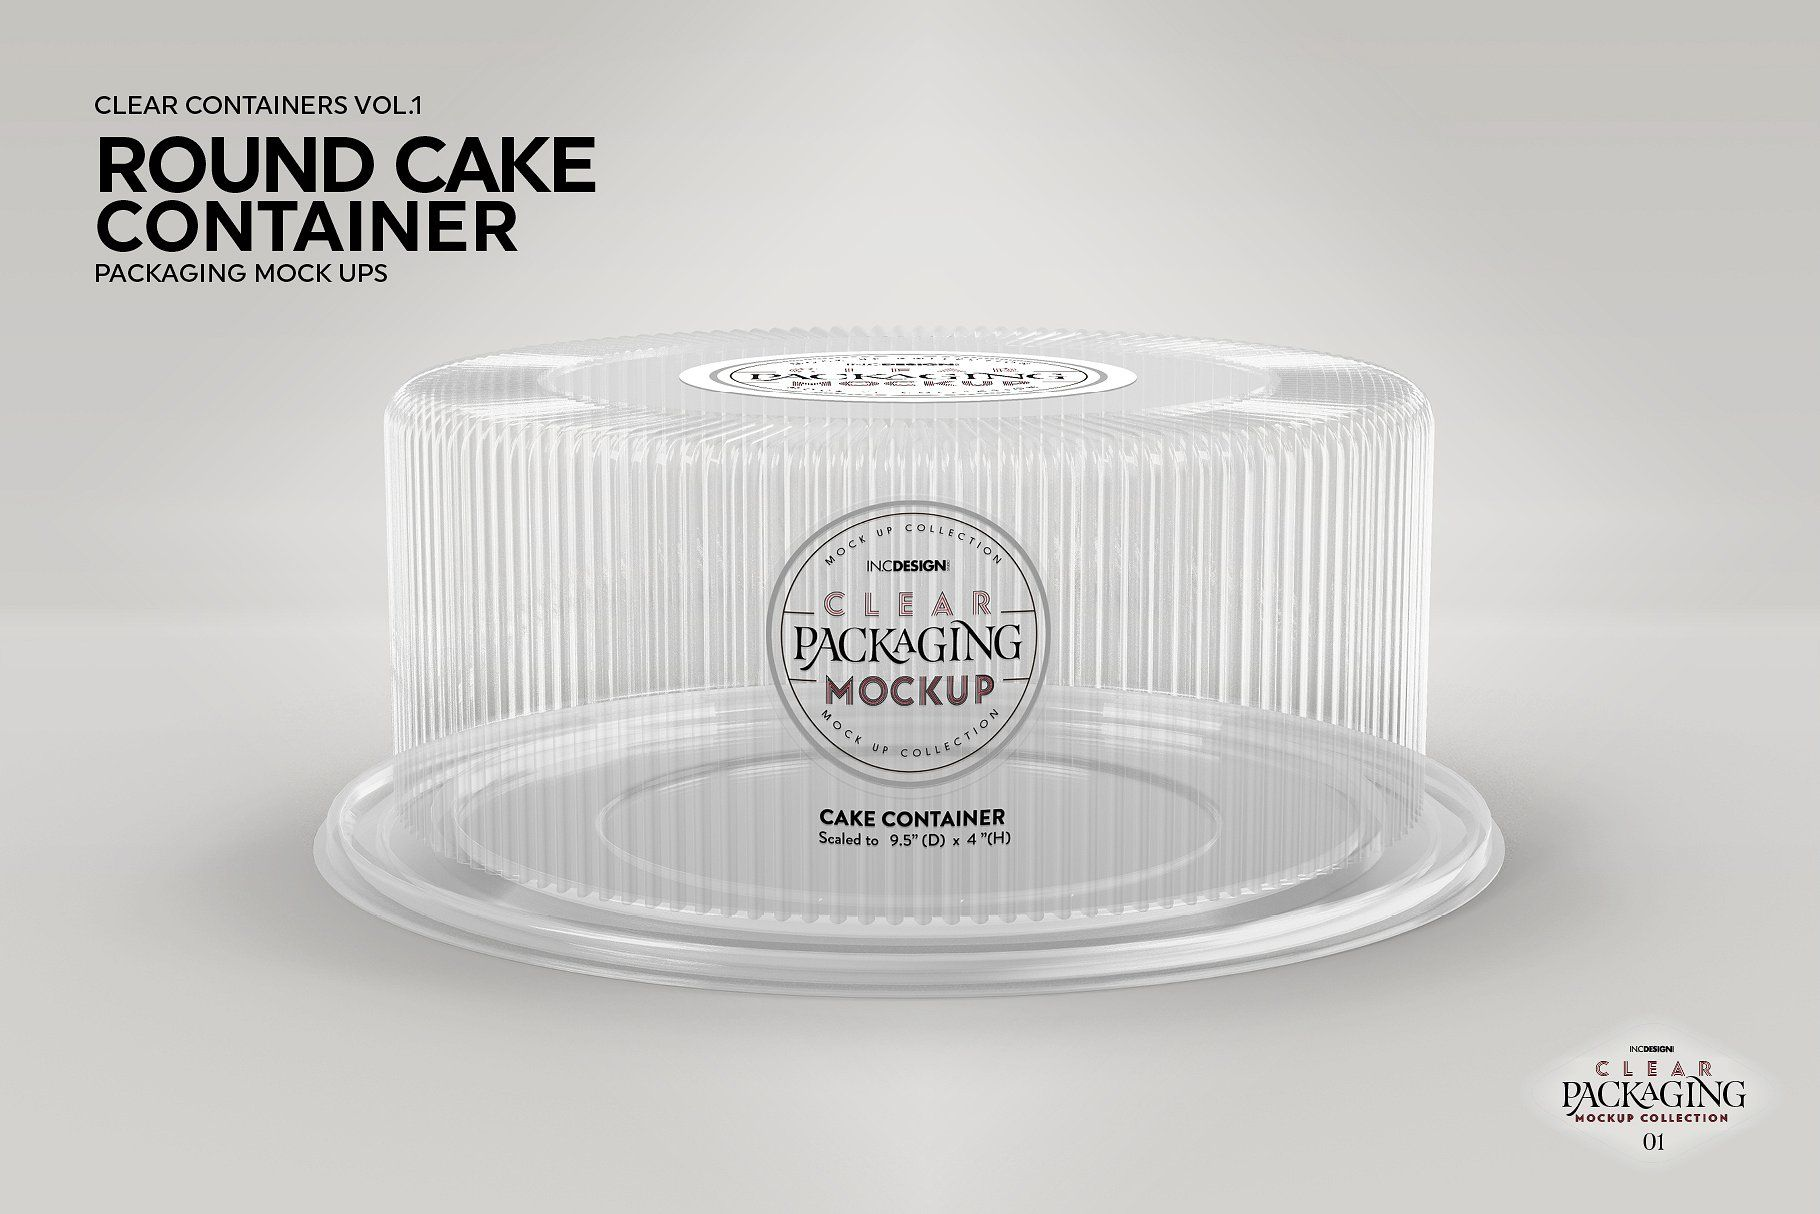 Cake Container Packaging Mockup Packaging Mockup Clear Container Packaging